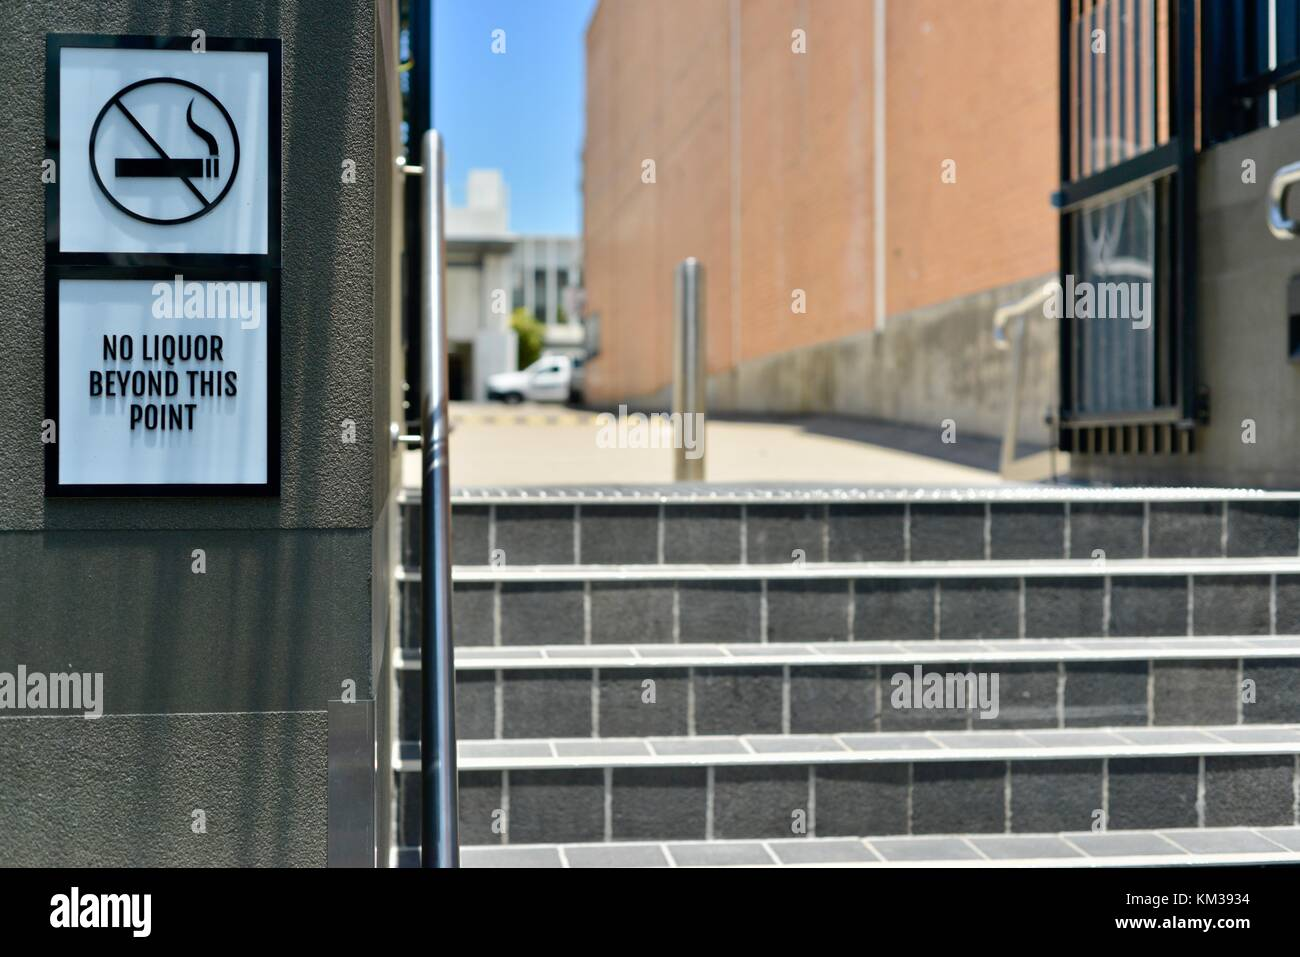 No smoking and no Liquor beyond this point signs, City Lane and City Arcade, Townsville, Queensland, Australia - Stock Image